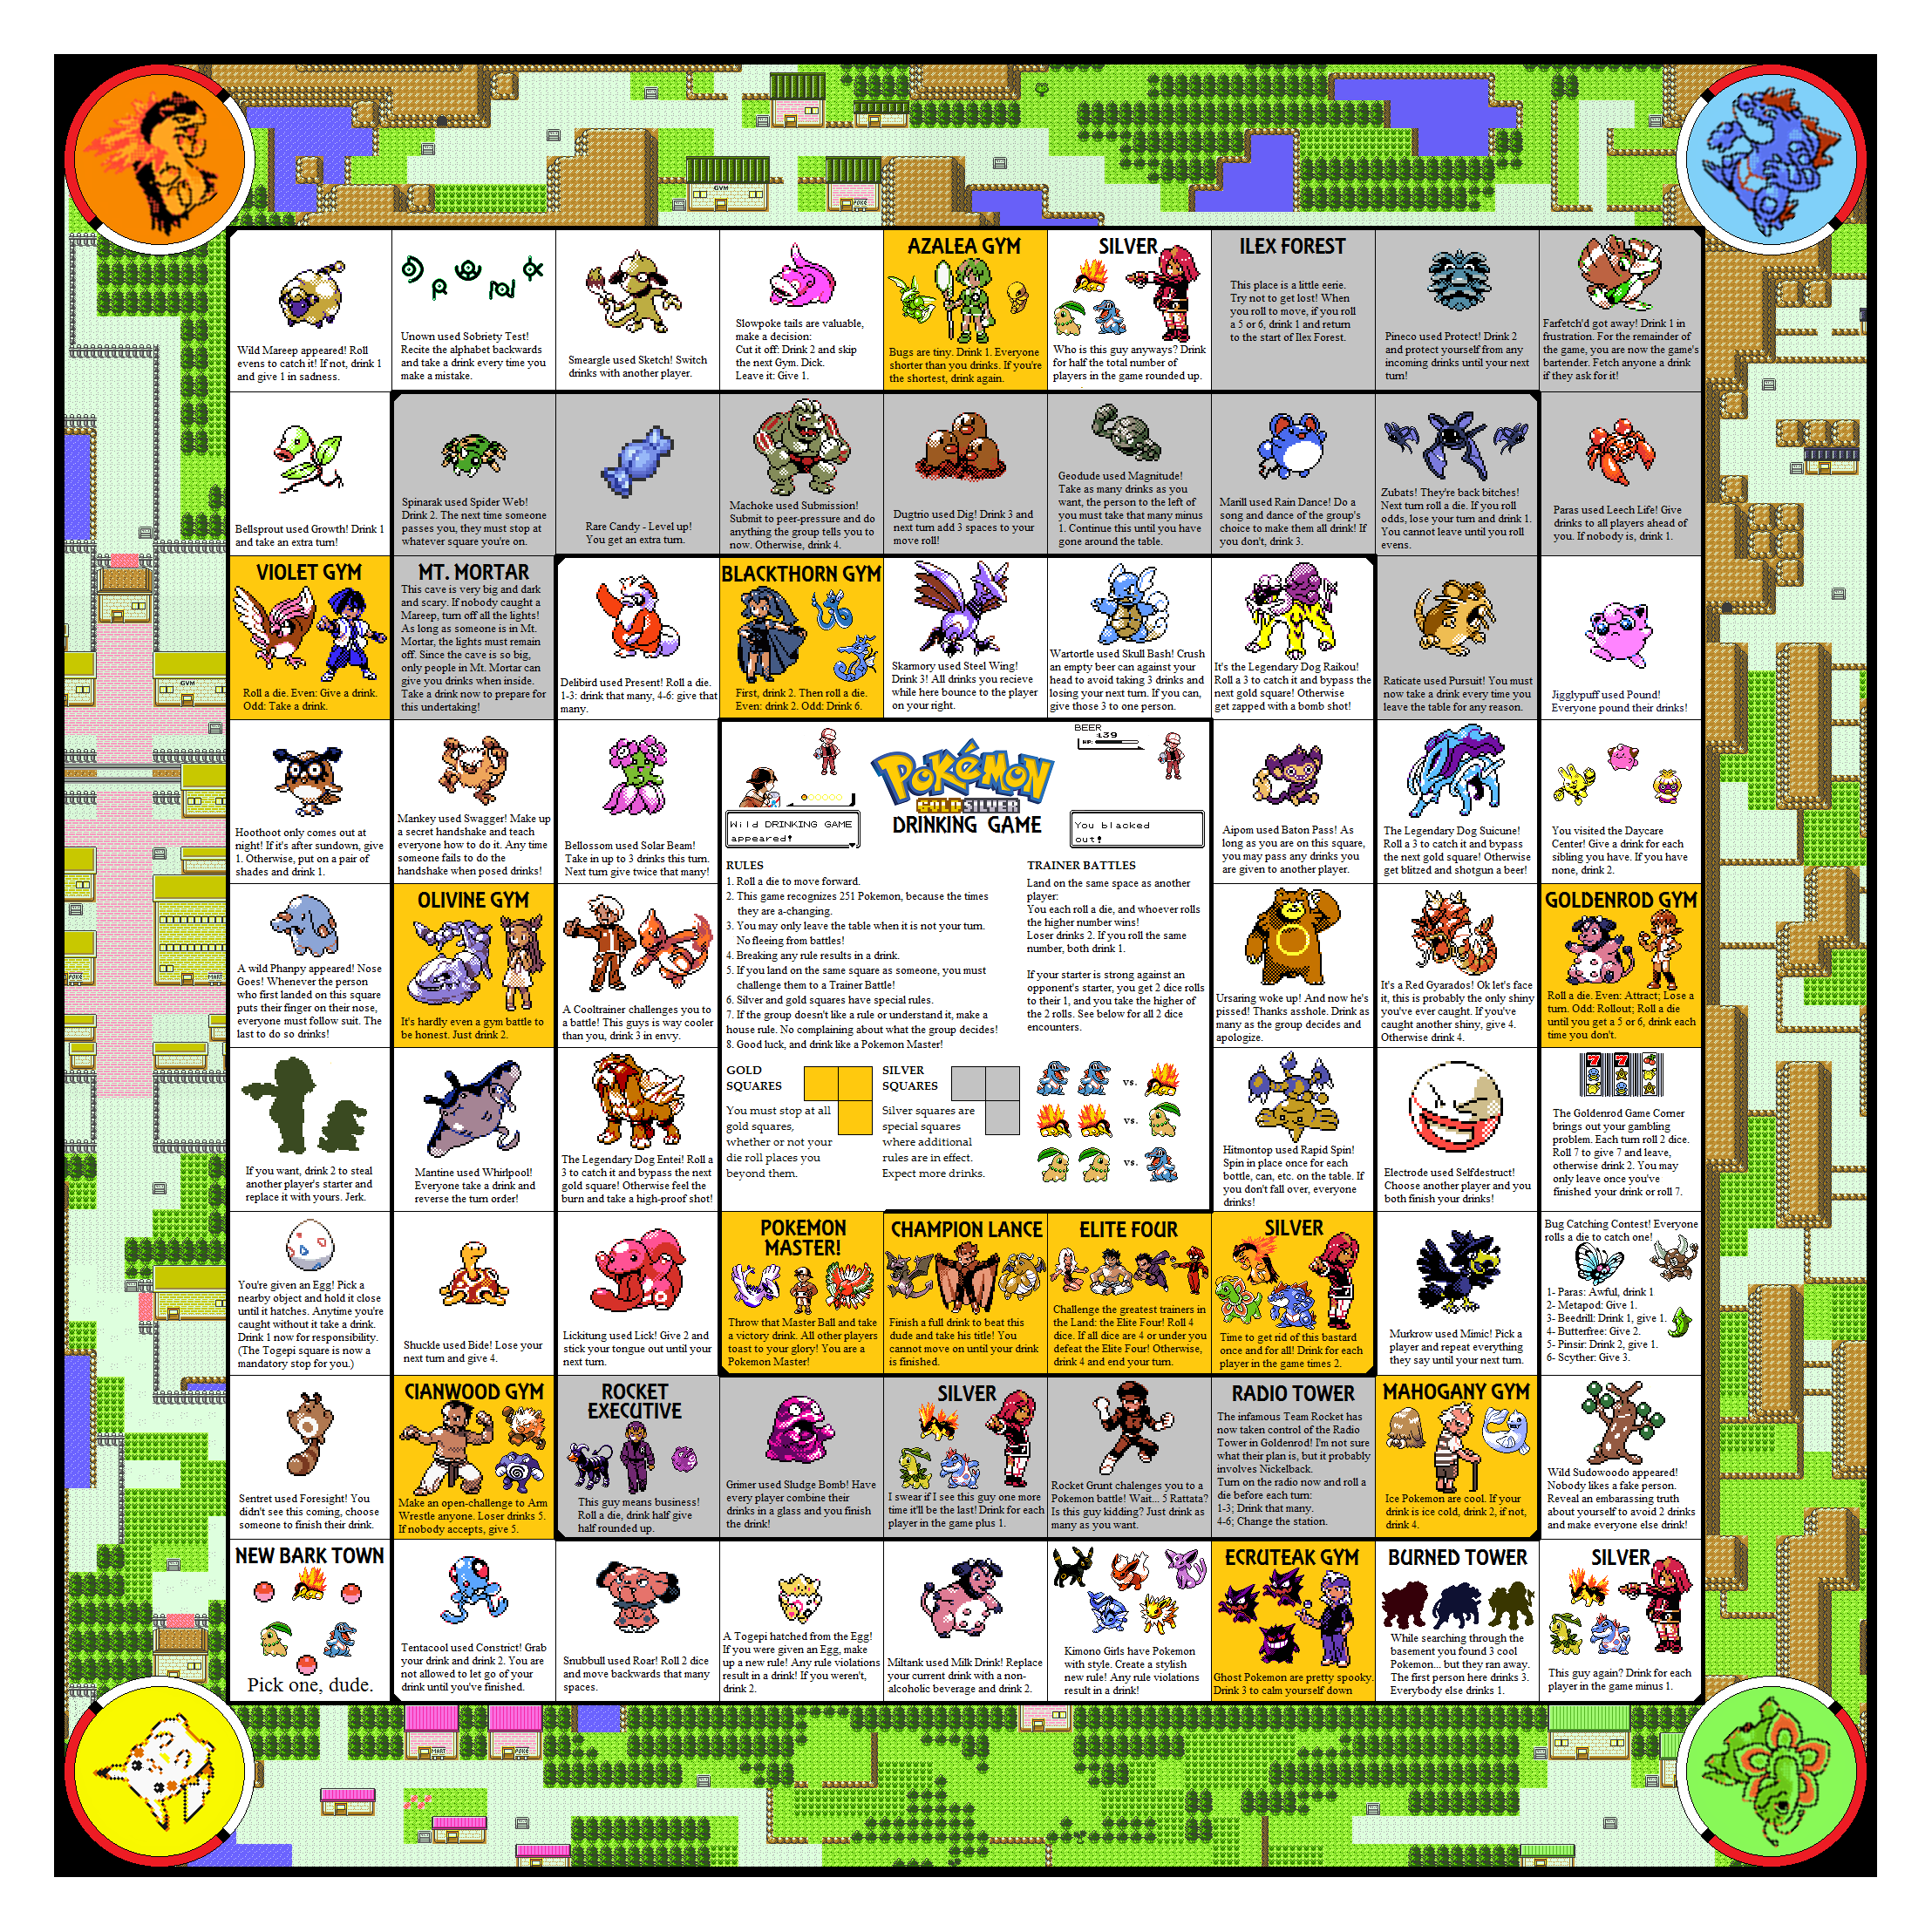 The Pokemon Drinking Game GoldSilver Edition